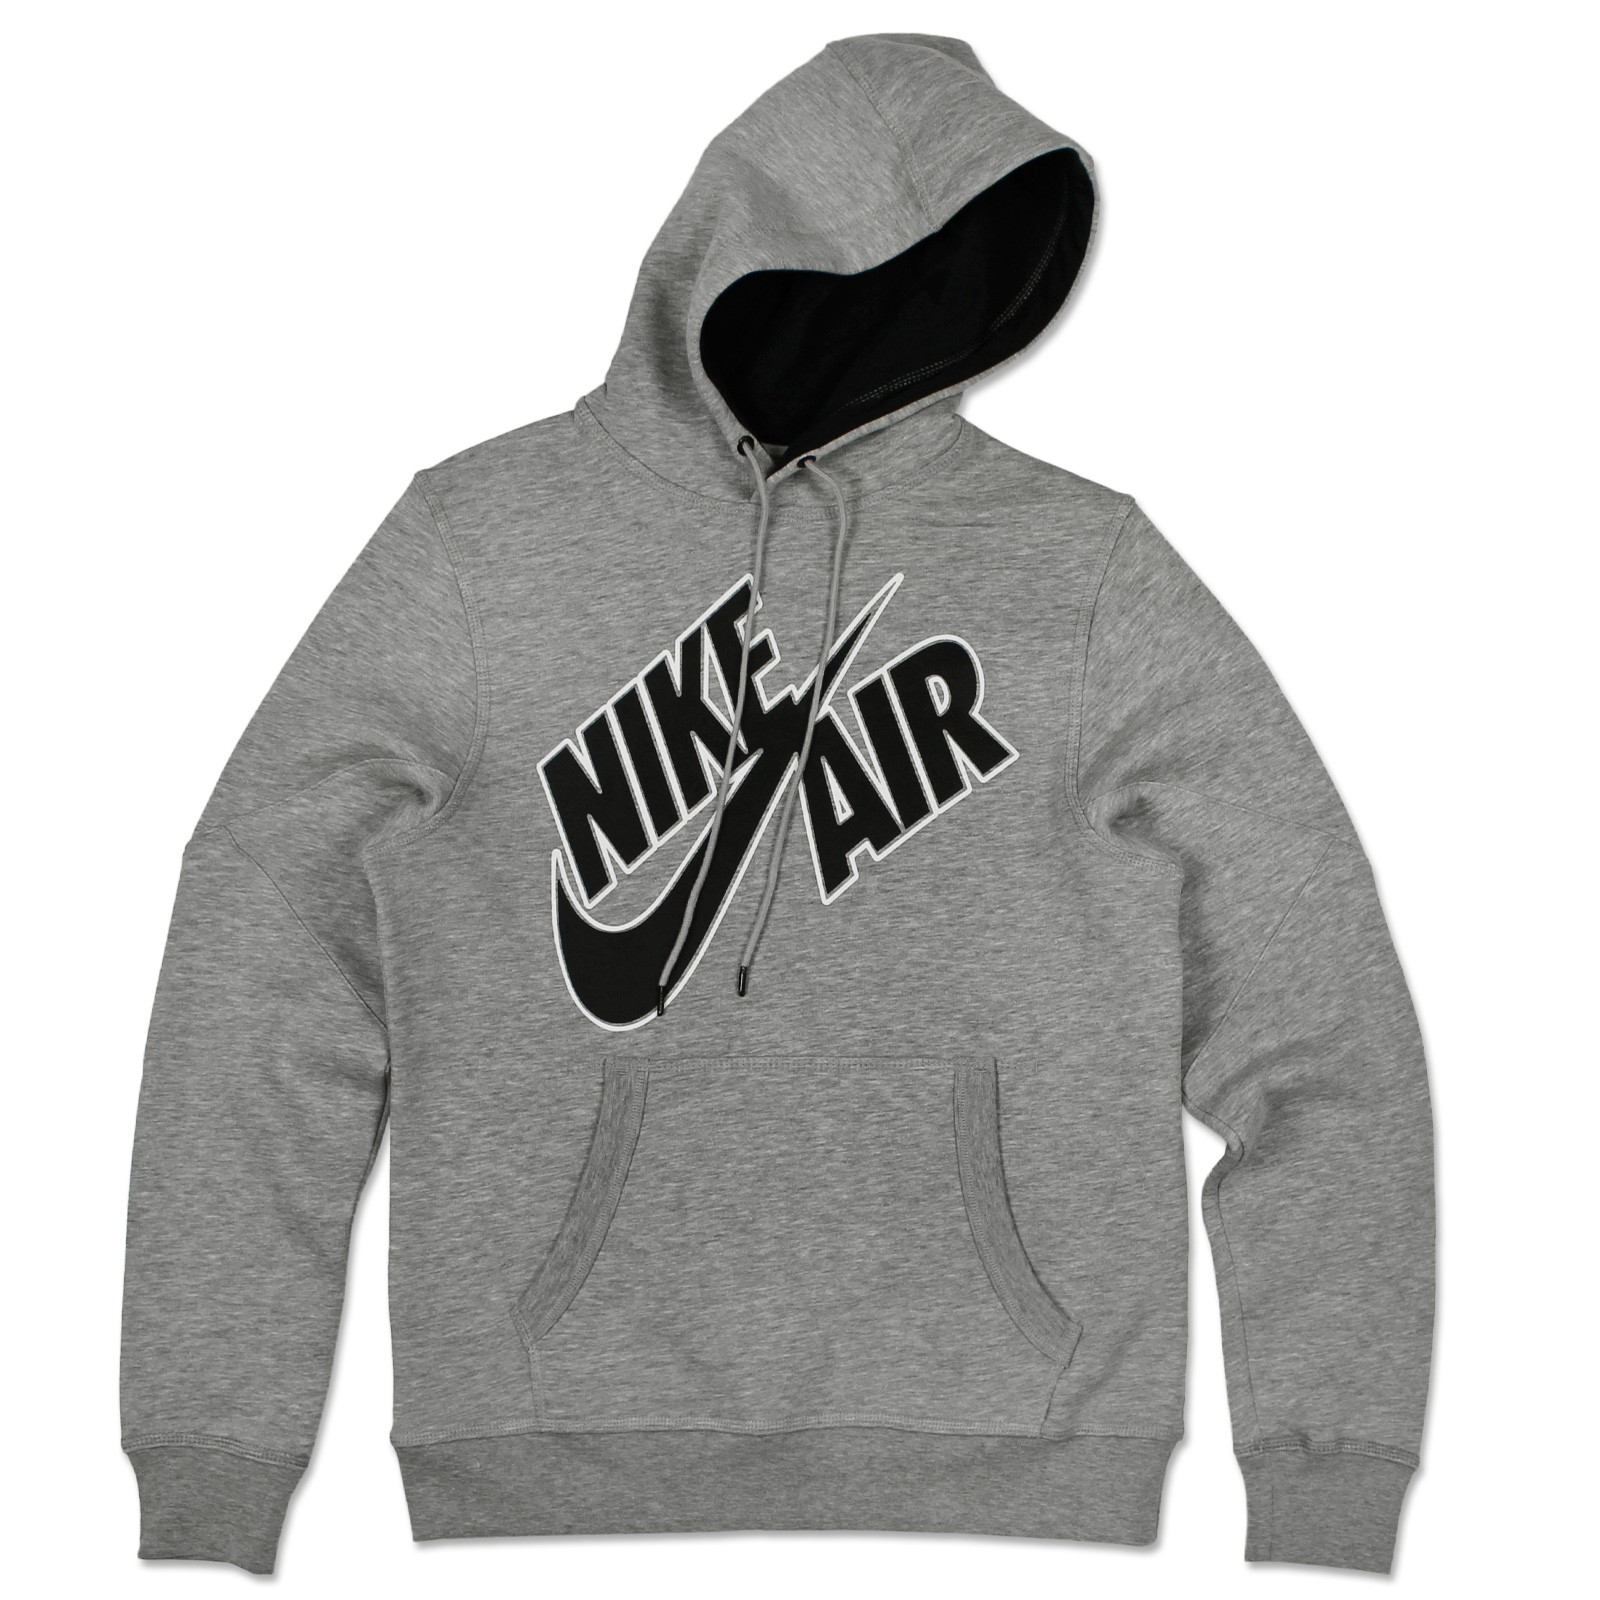 nike air max swoosh hoodie bauchtasche kapuzenpullover. Black Bedroom Furniture Sets. Home Design Ideas